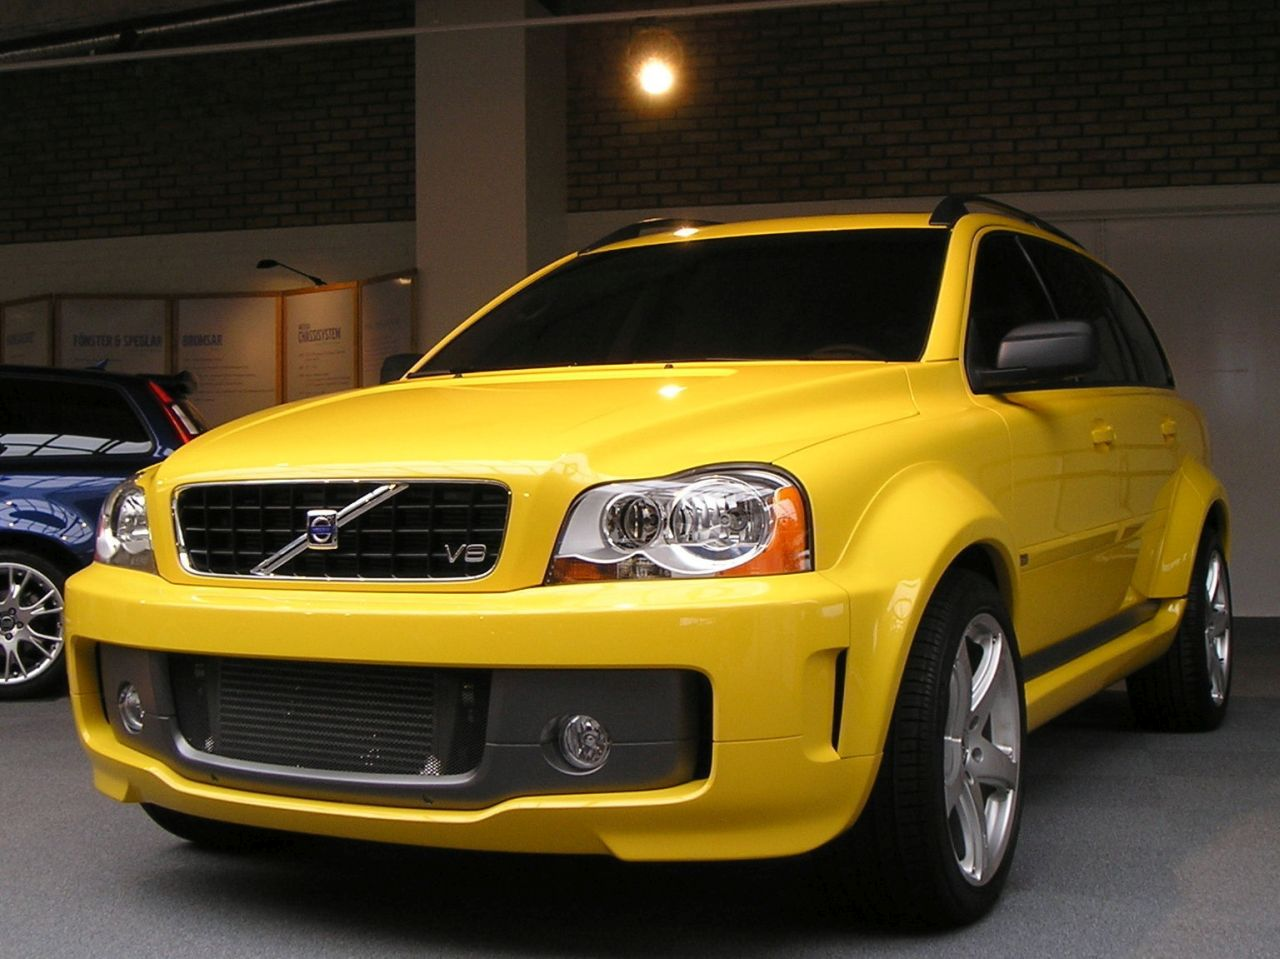 Volvo XC90 2004 PUV Concept - I've got the power !! 28